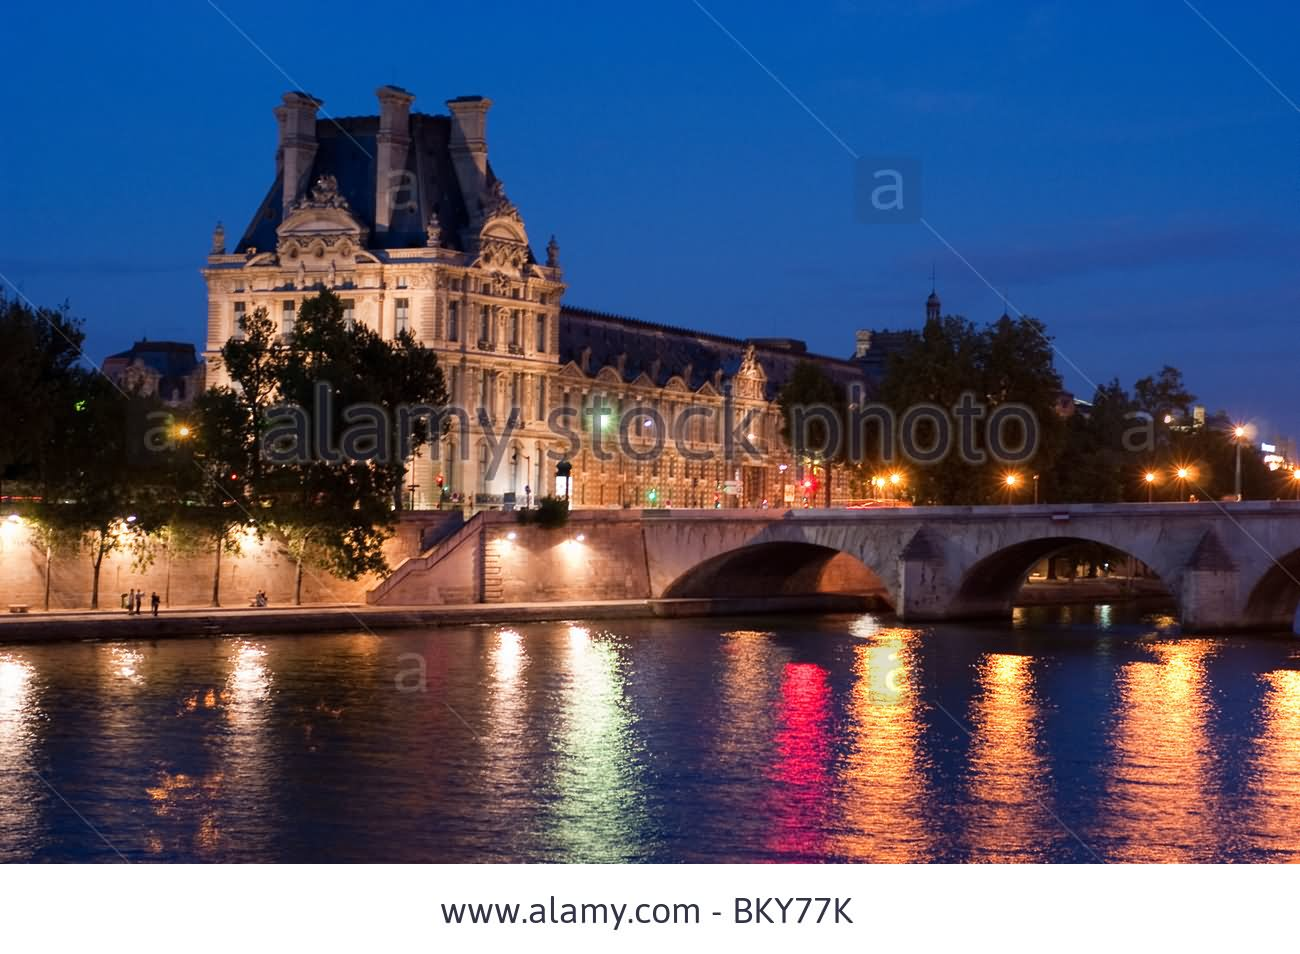 Seine River Lit Up At Dusk With The Louvre Museum